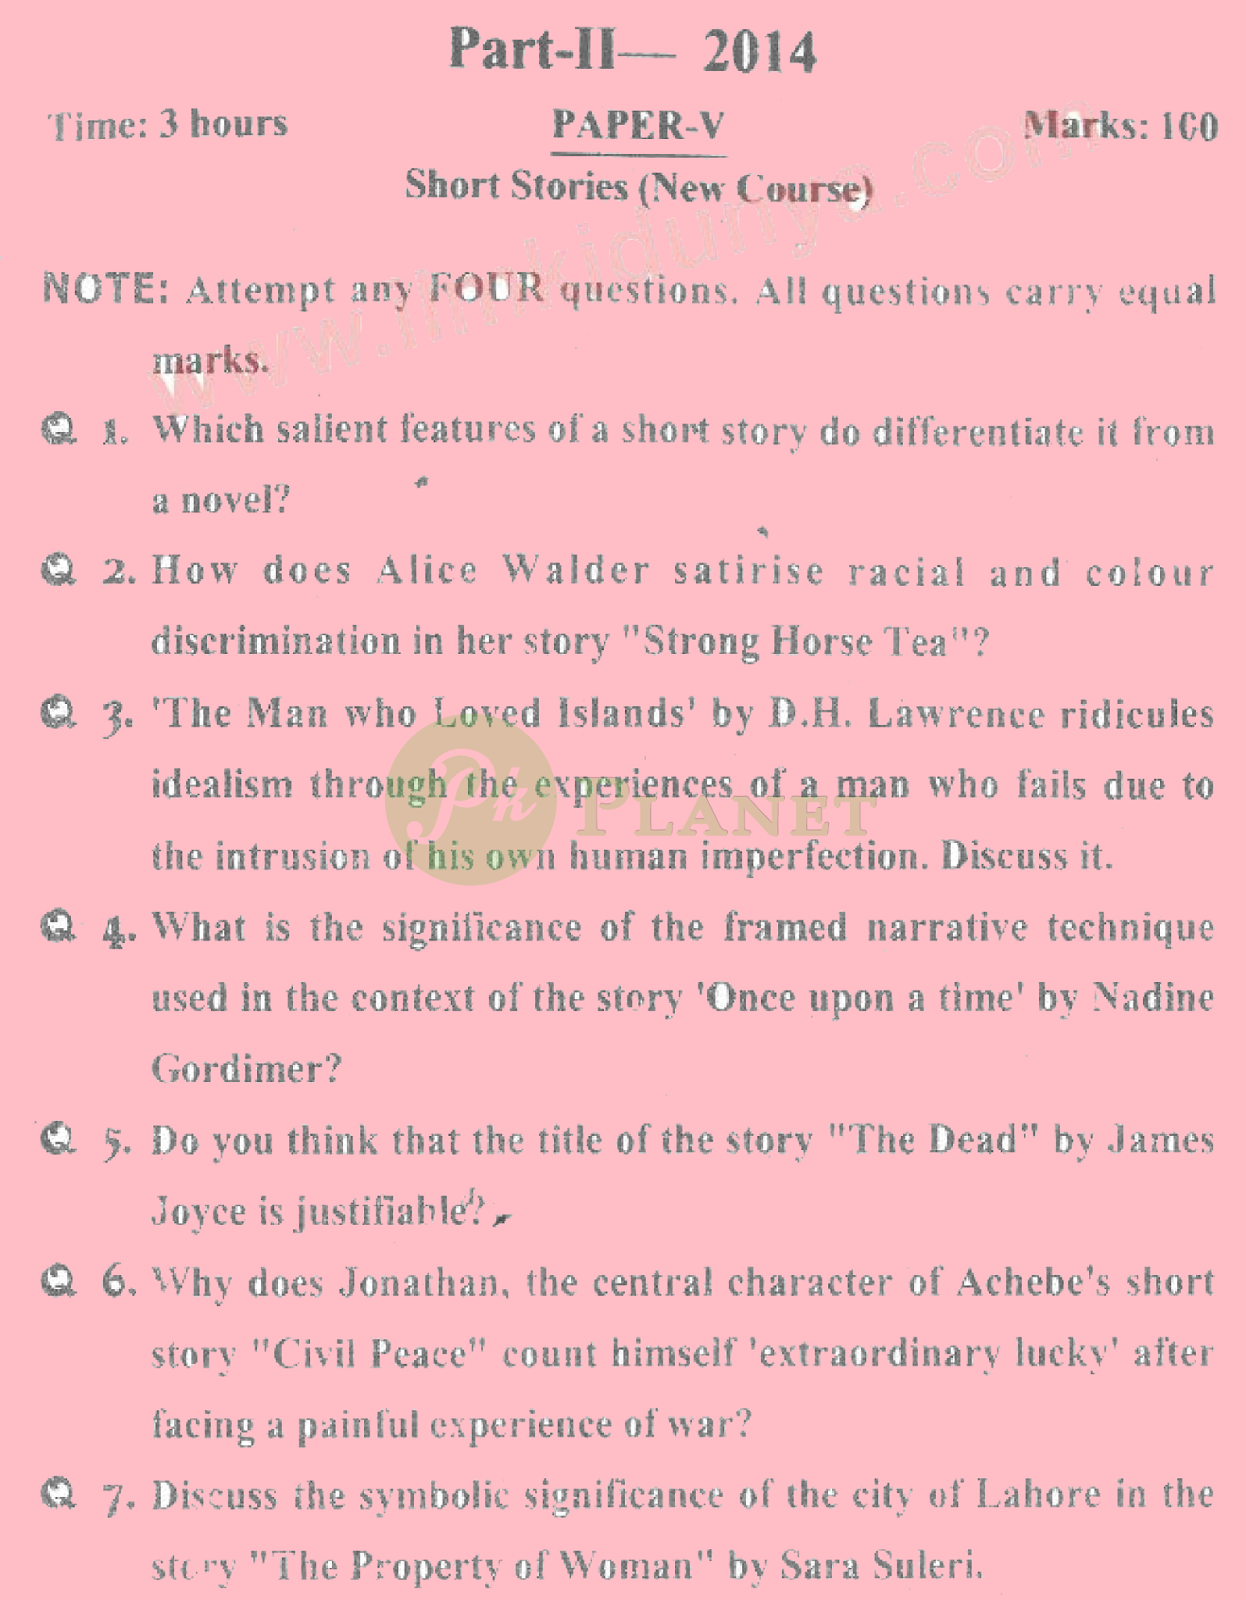 past papers of ma english part 2 punjab university 2014 short stories